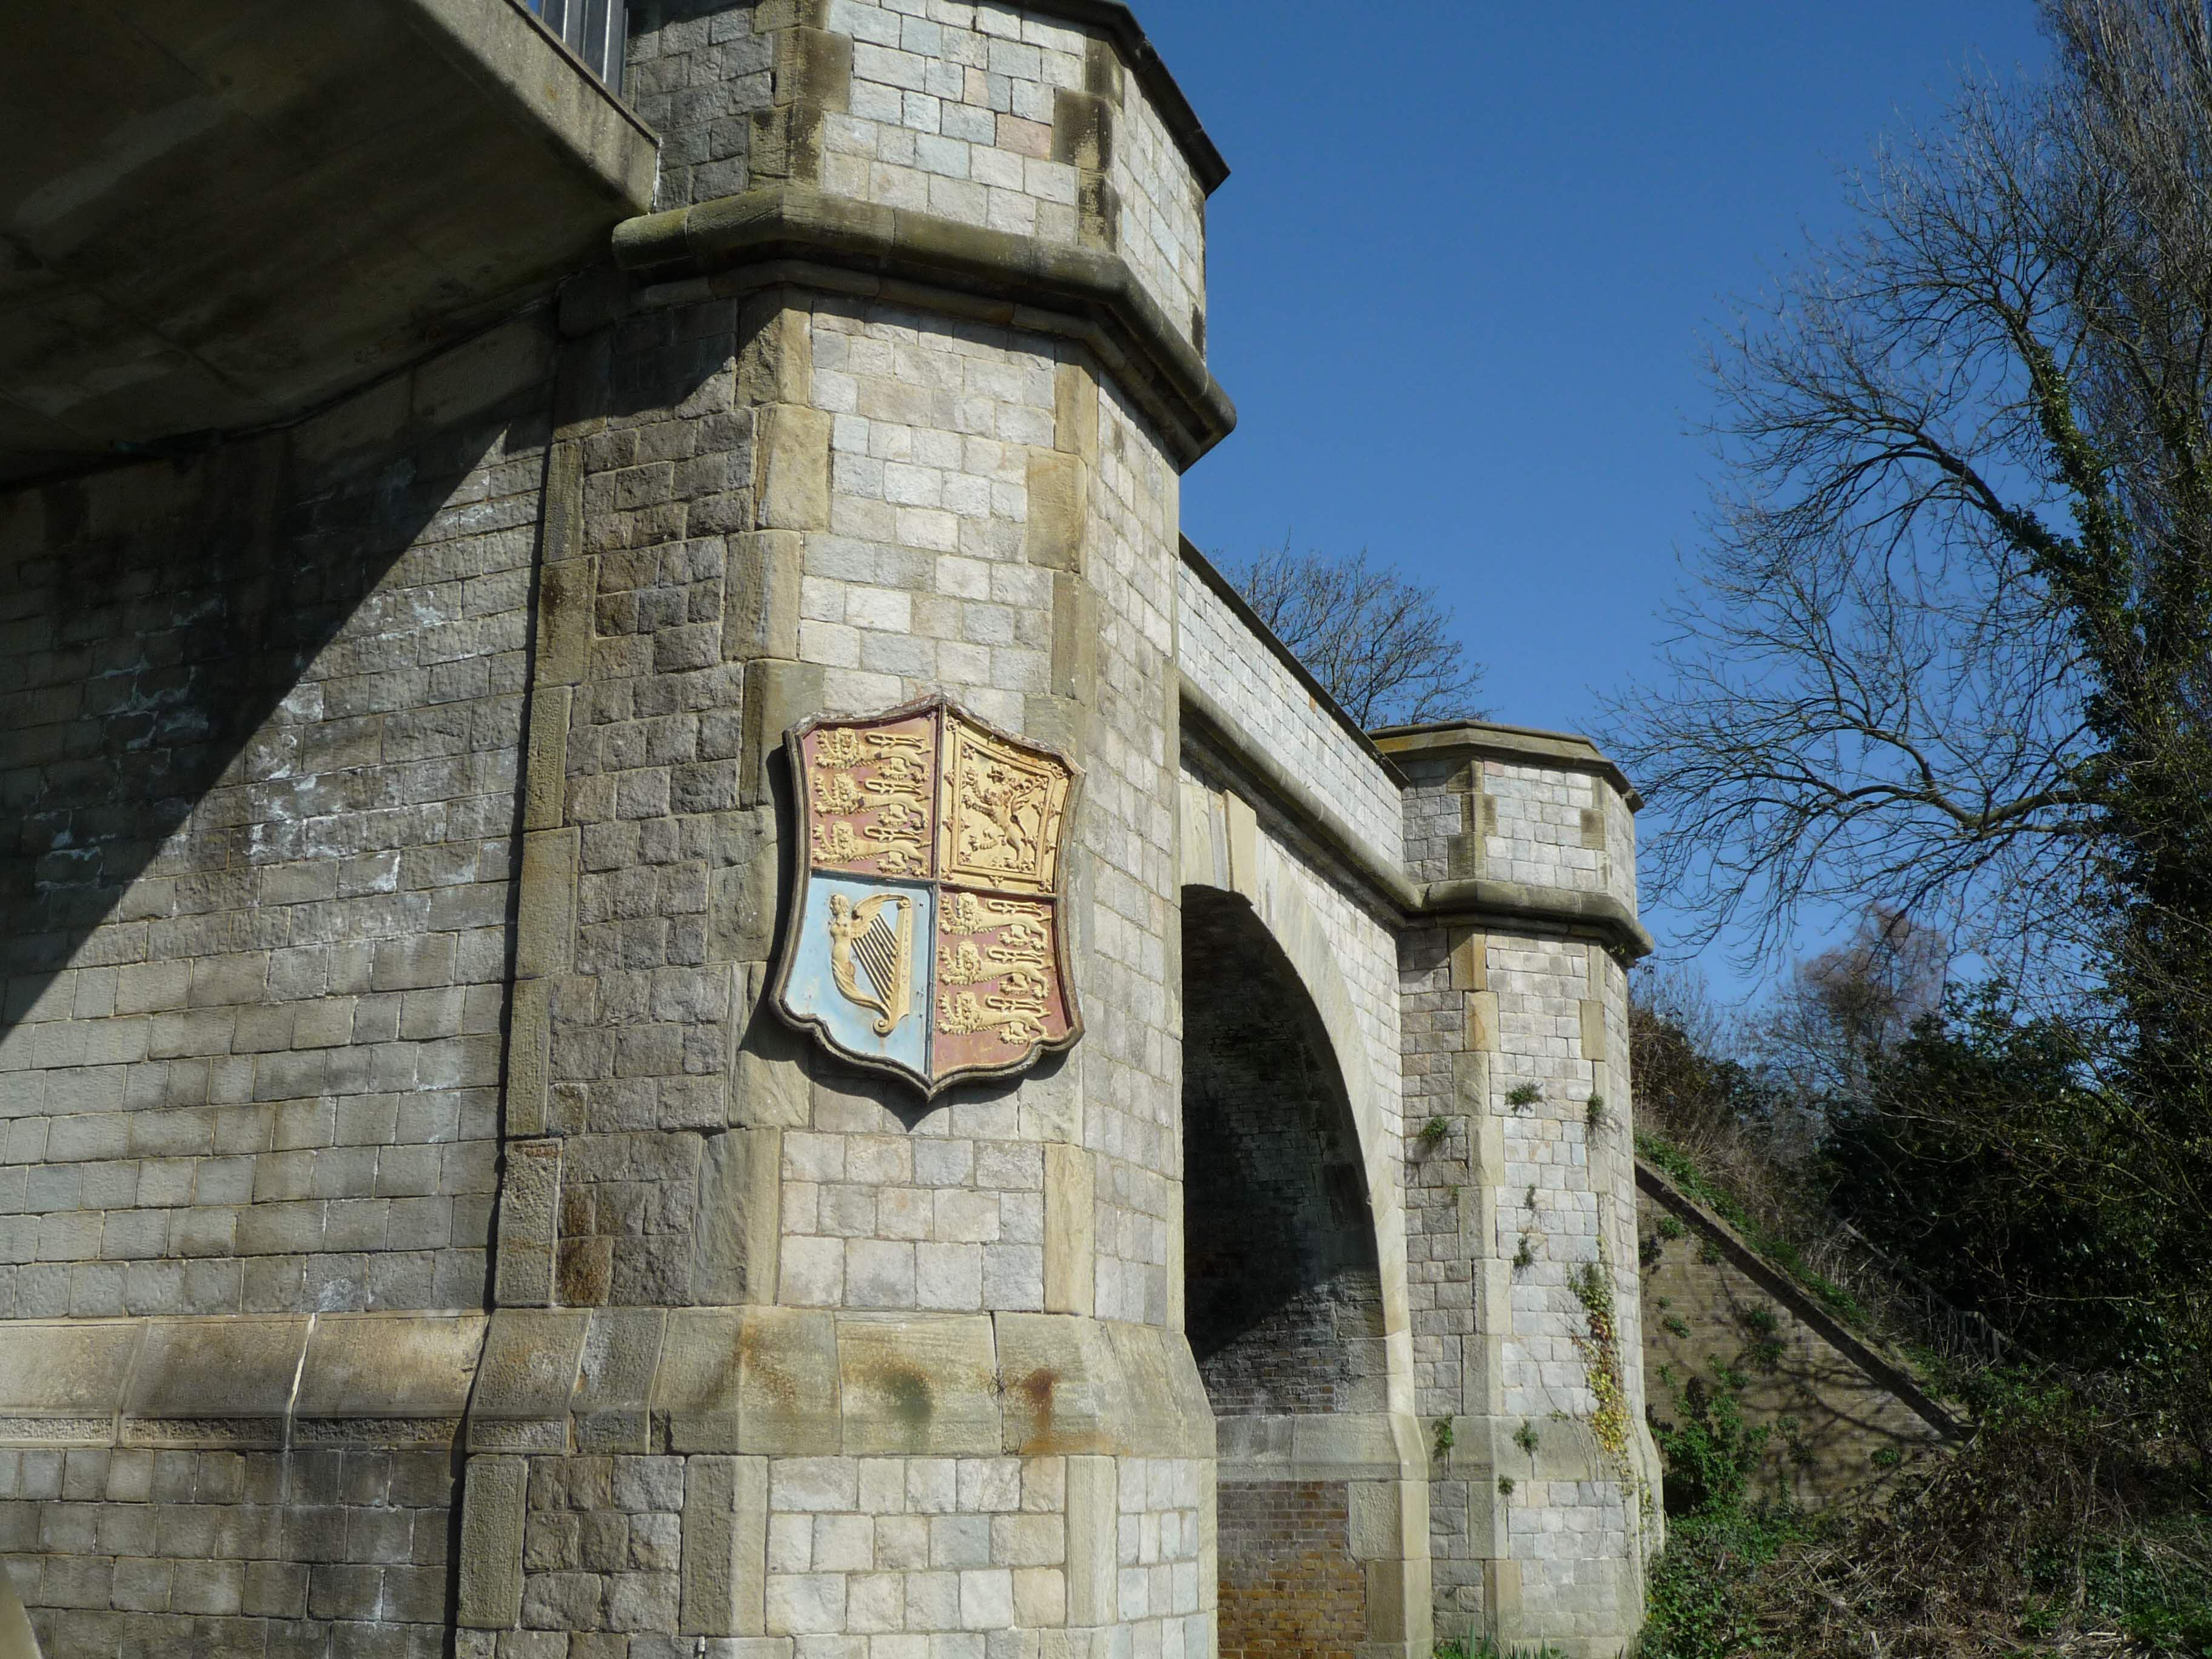 Bridge in Windsor Great Park. Who's crest is that?